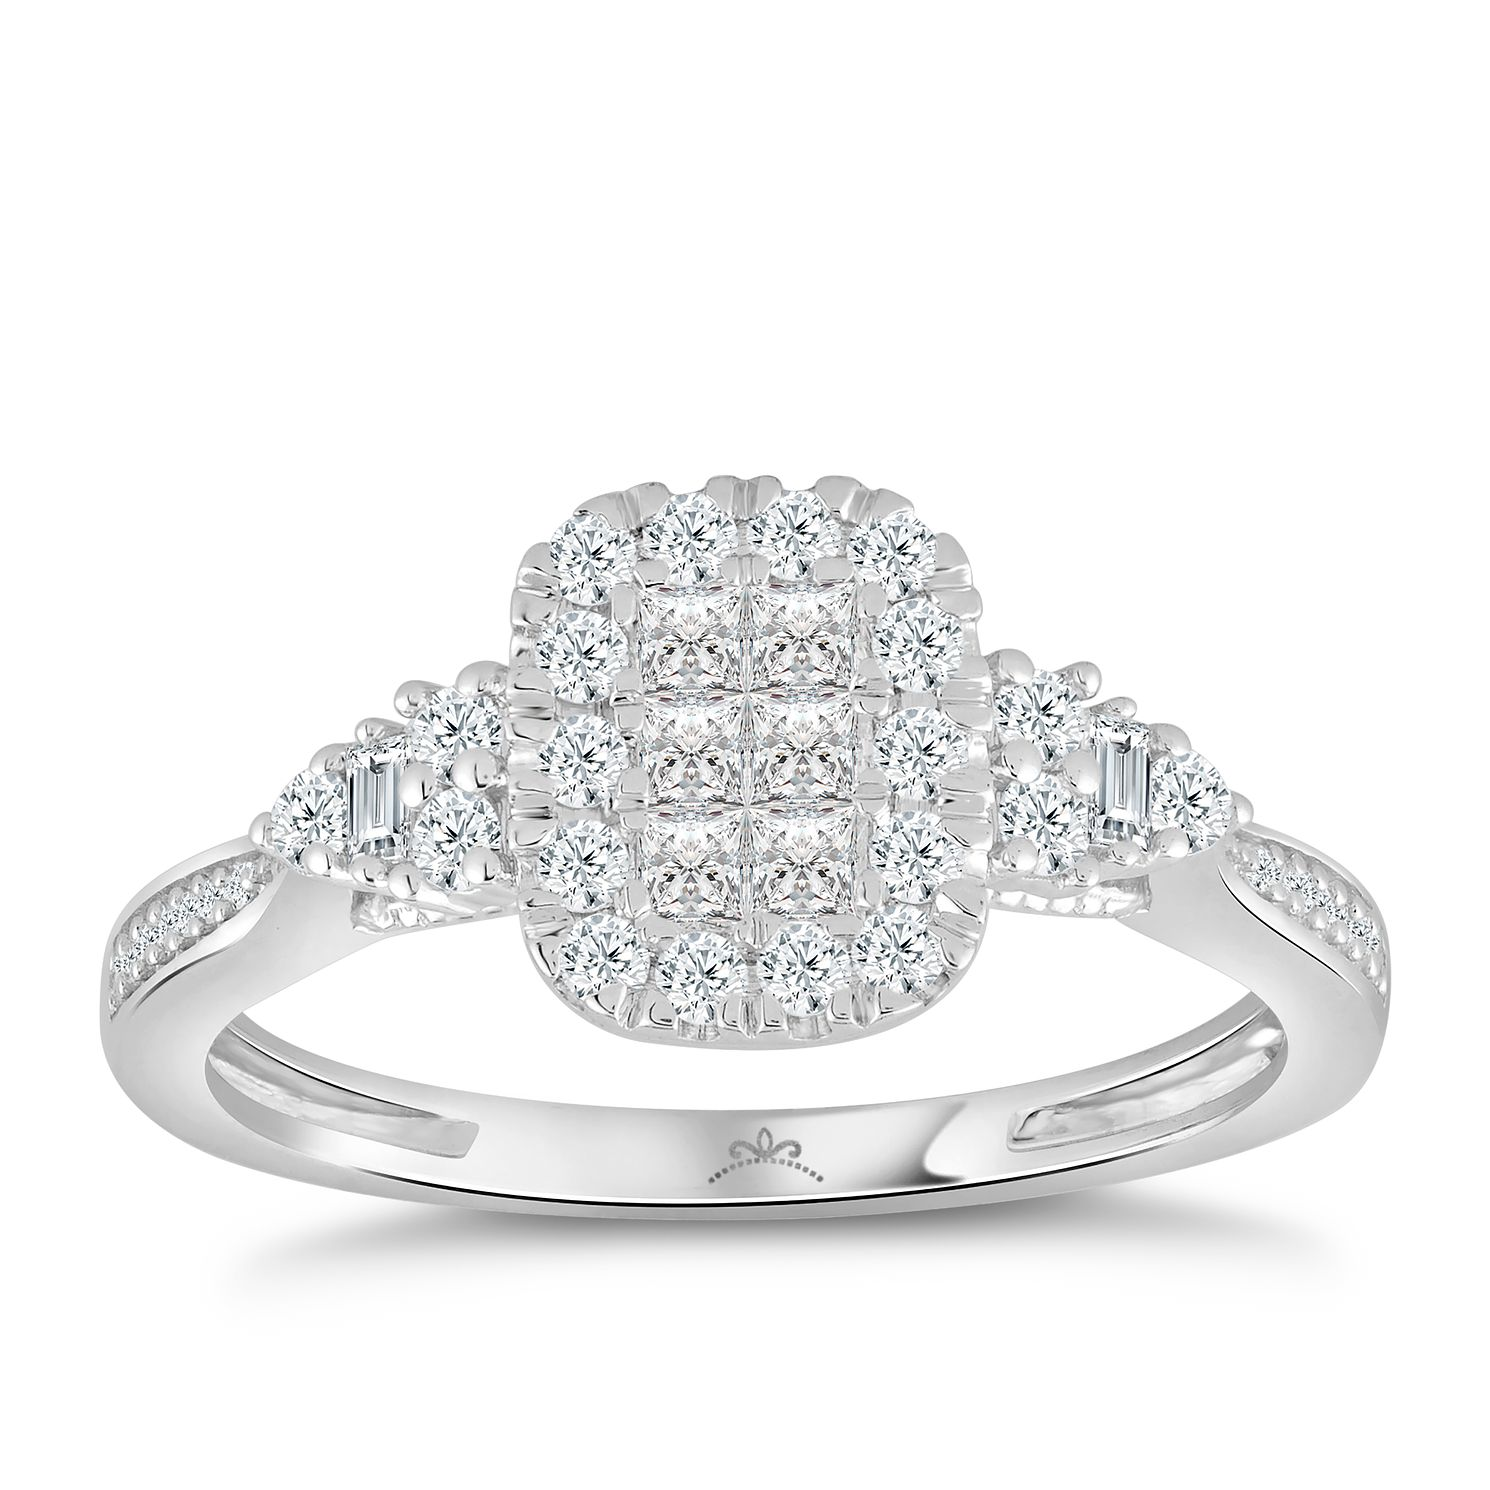 Princessa 9ct White Gold 0.50ct Diamond Cluster Ring - Product number 4576551